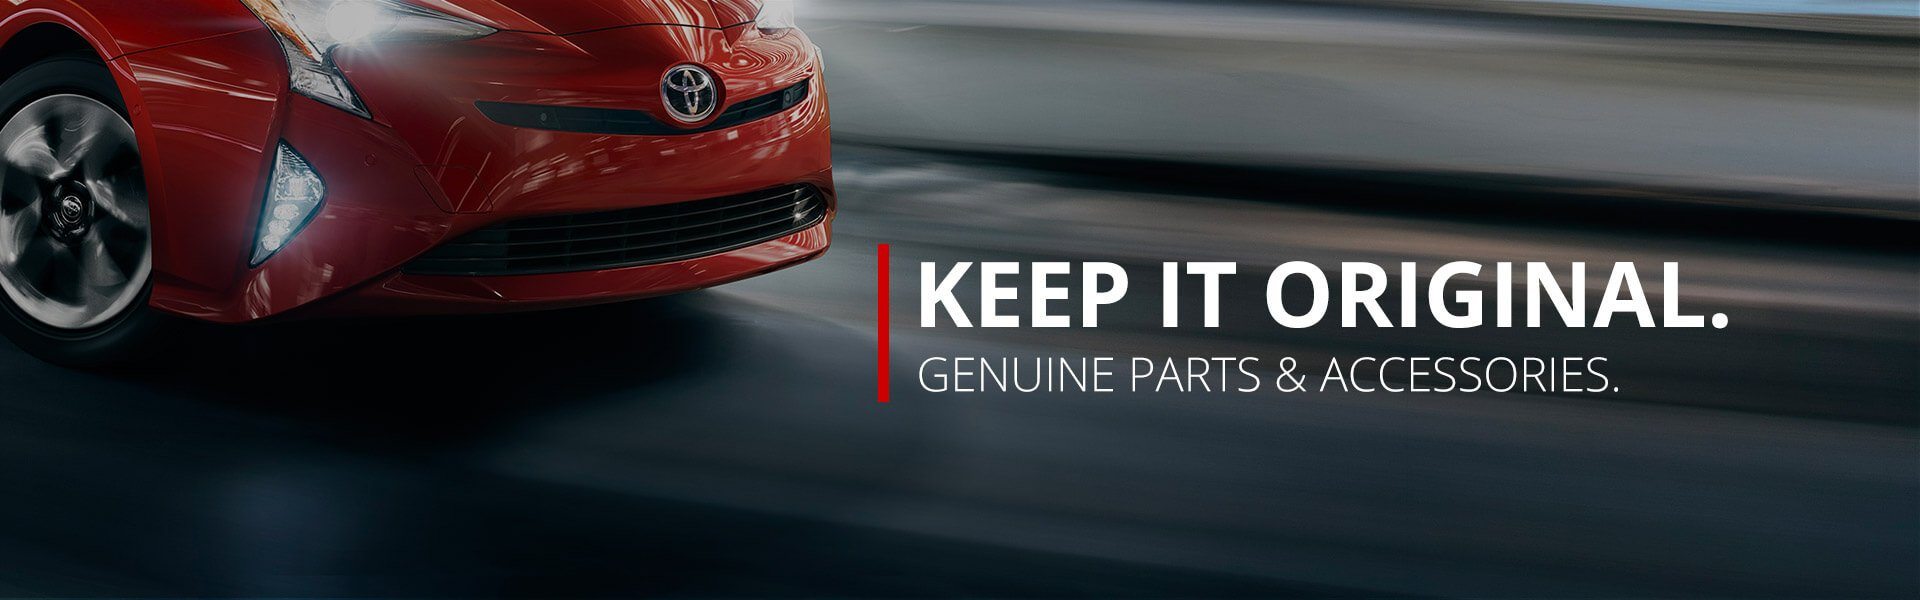 Toyota OEM parts and accessories